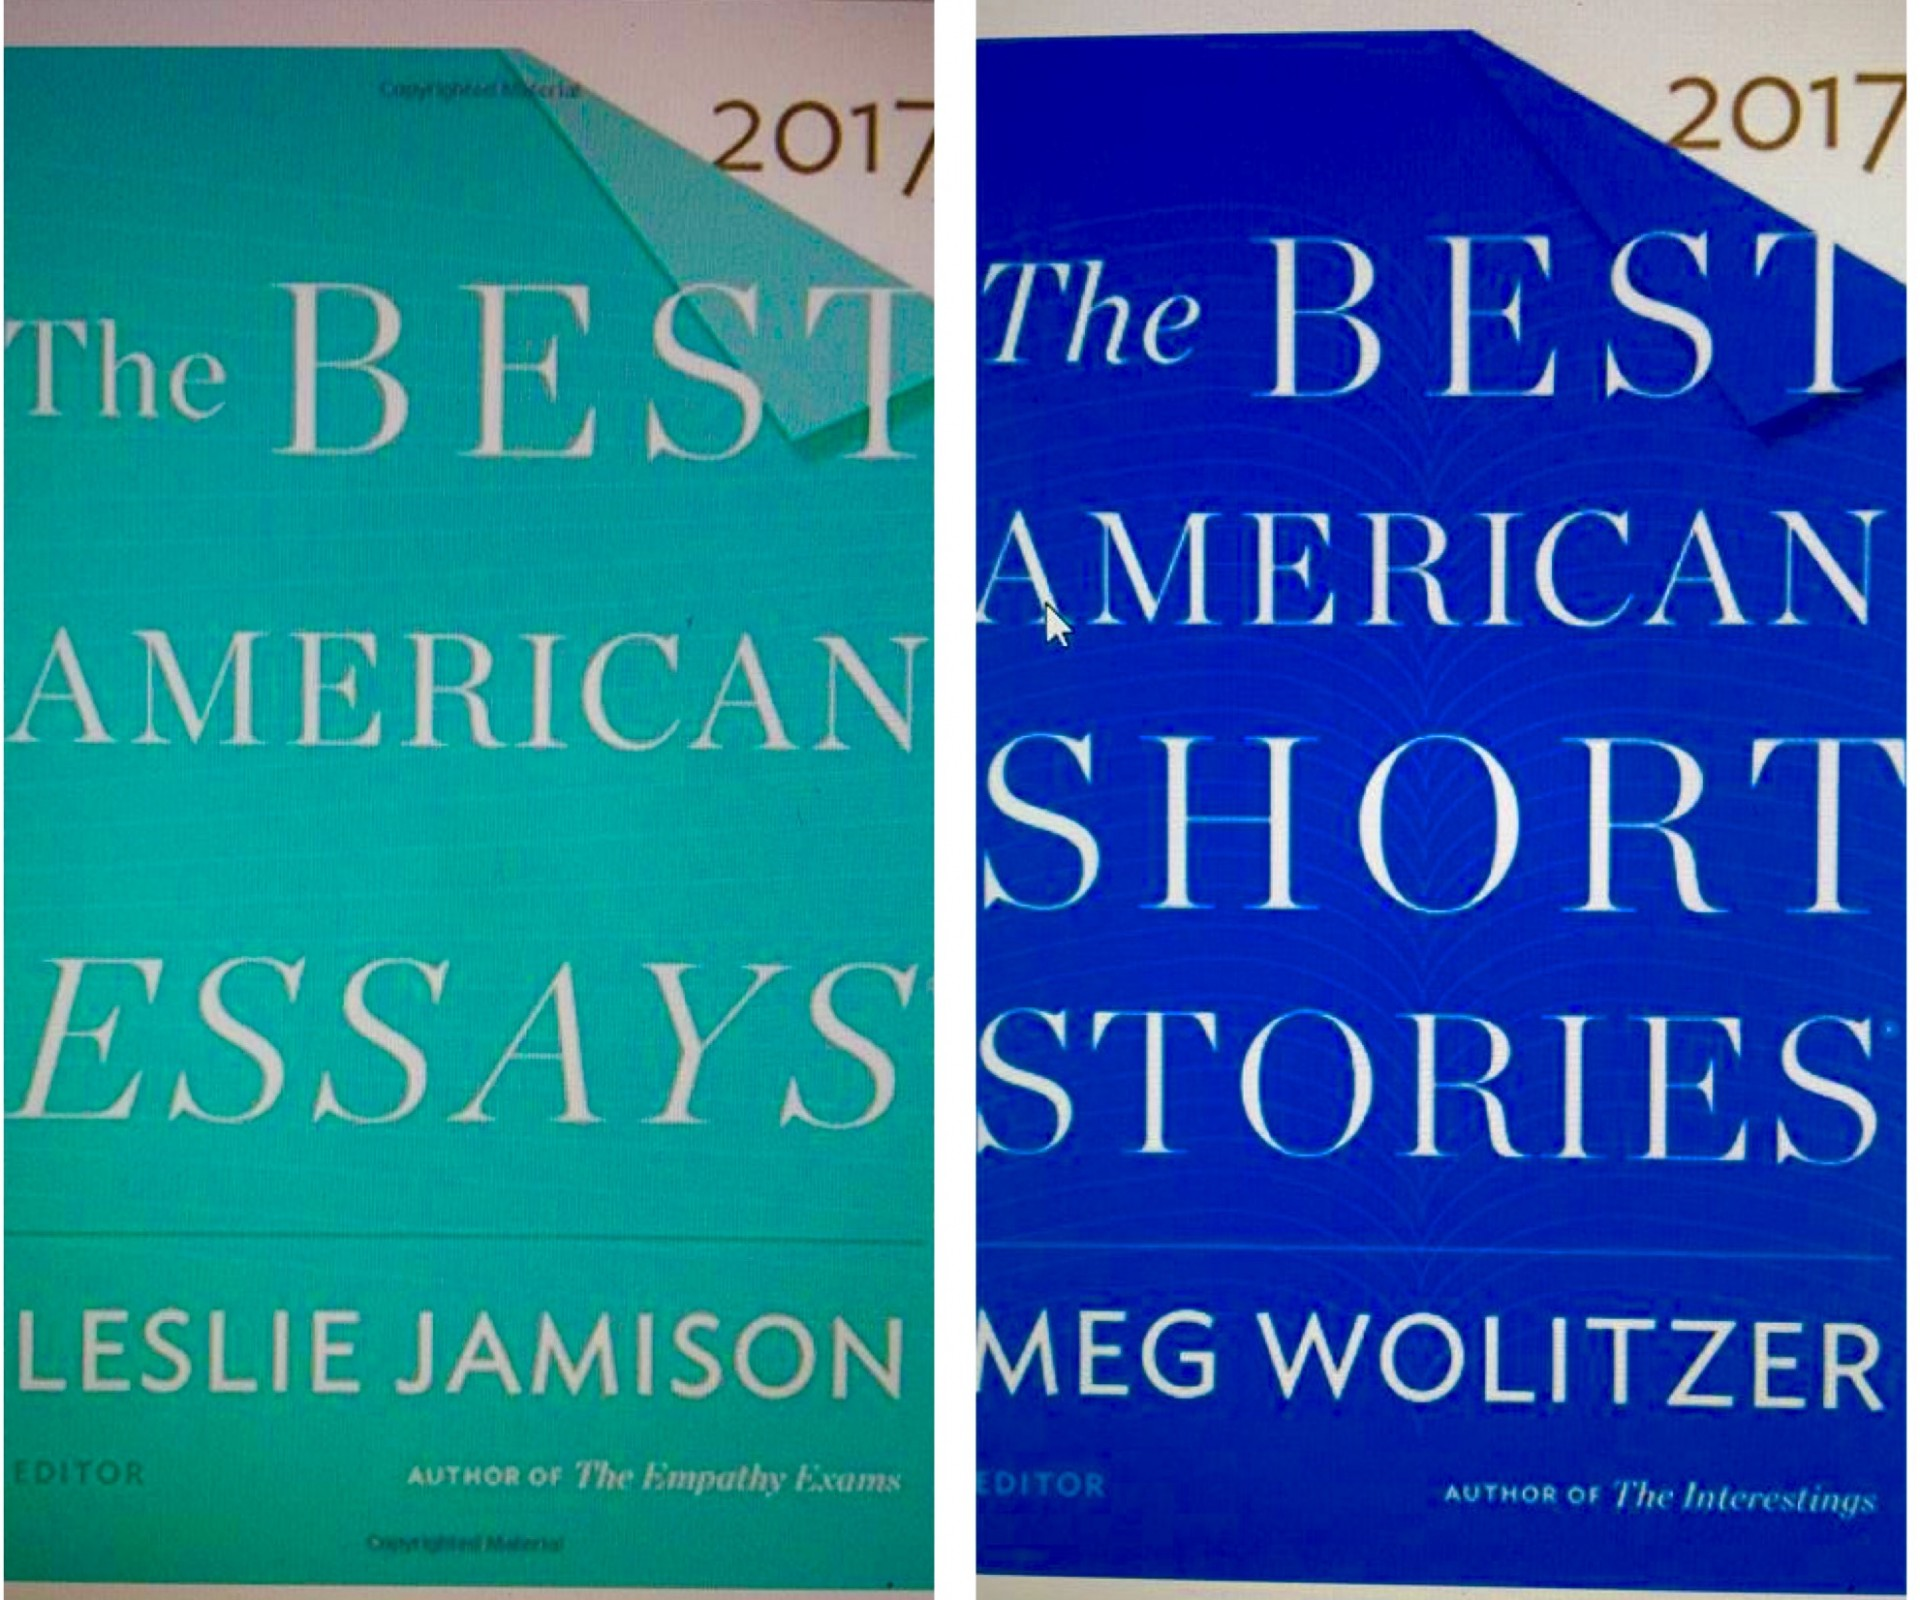 008 Essay Example Best American Essays Striking 2017 Table Of Contents The Century Pdf 1920